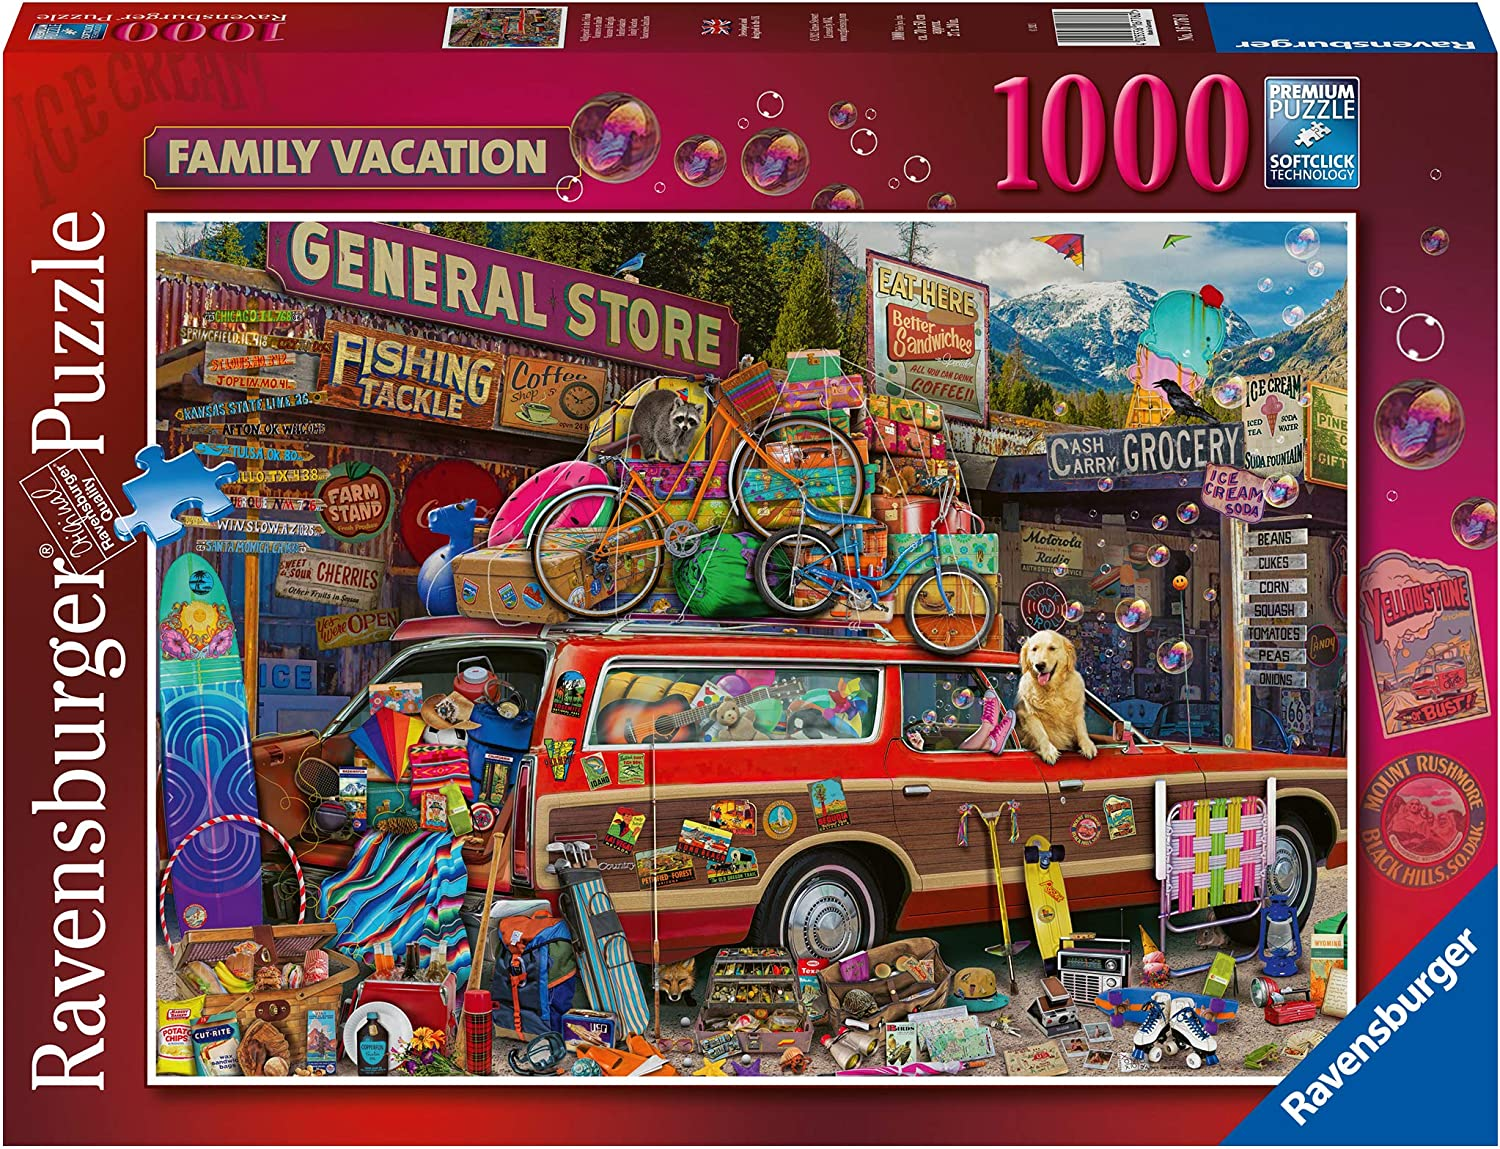 Ravensburger 16776 Aimee Stewart Family Vacation 1000 Piece Jigsaw Puzzle for Adults & for Kids Age 12 and Up